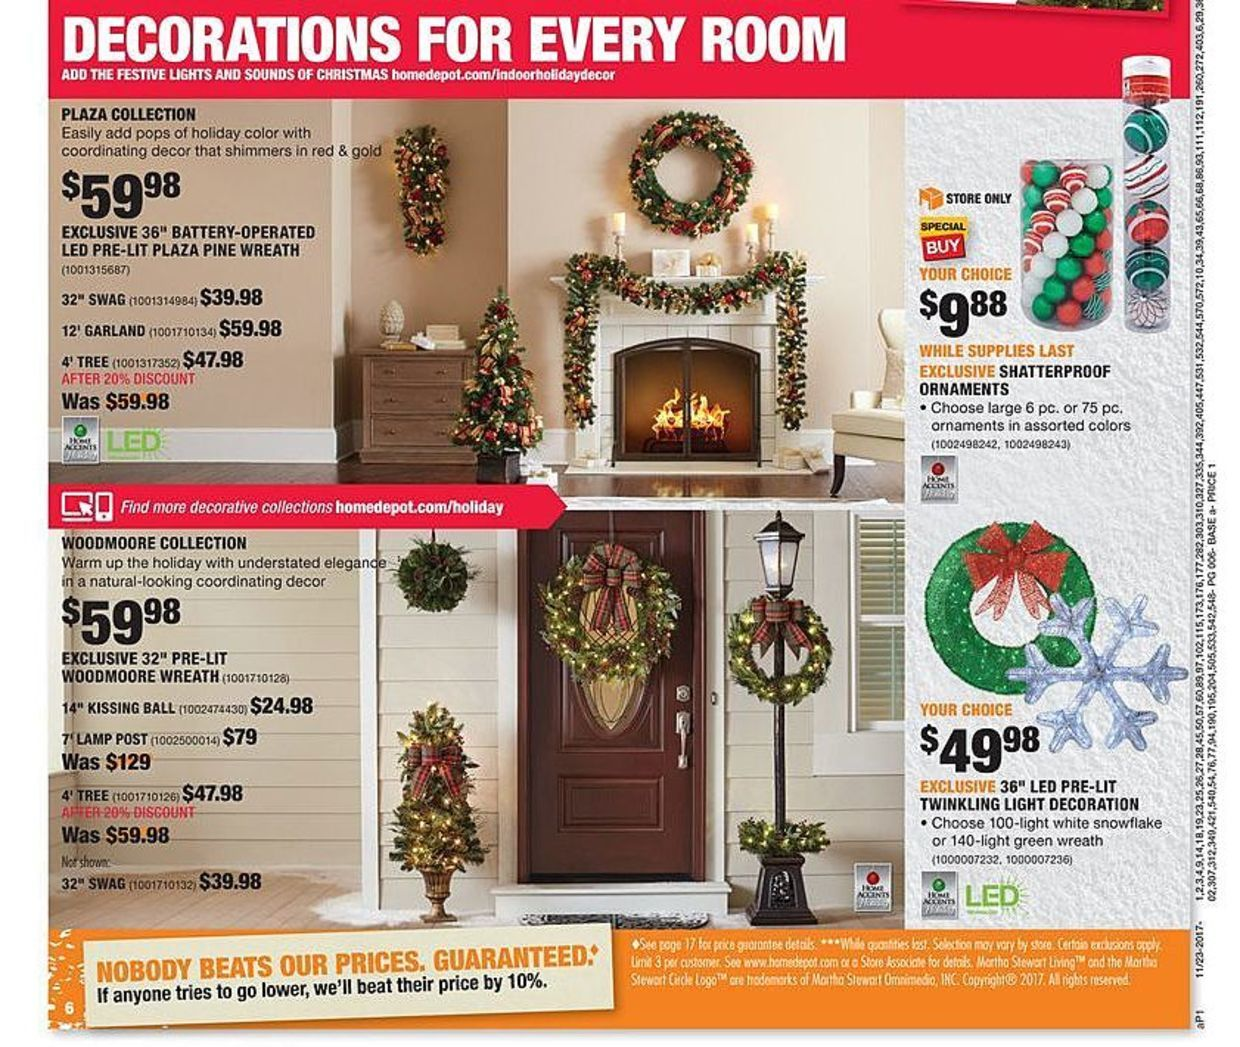 Home Depot Black Friday 2018 Ads and Deals Browse the Home